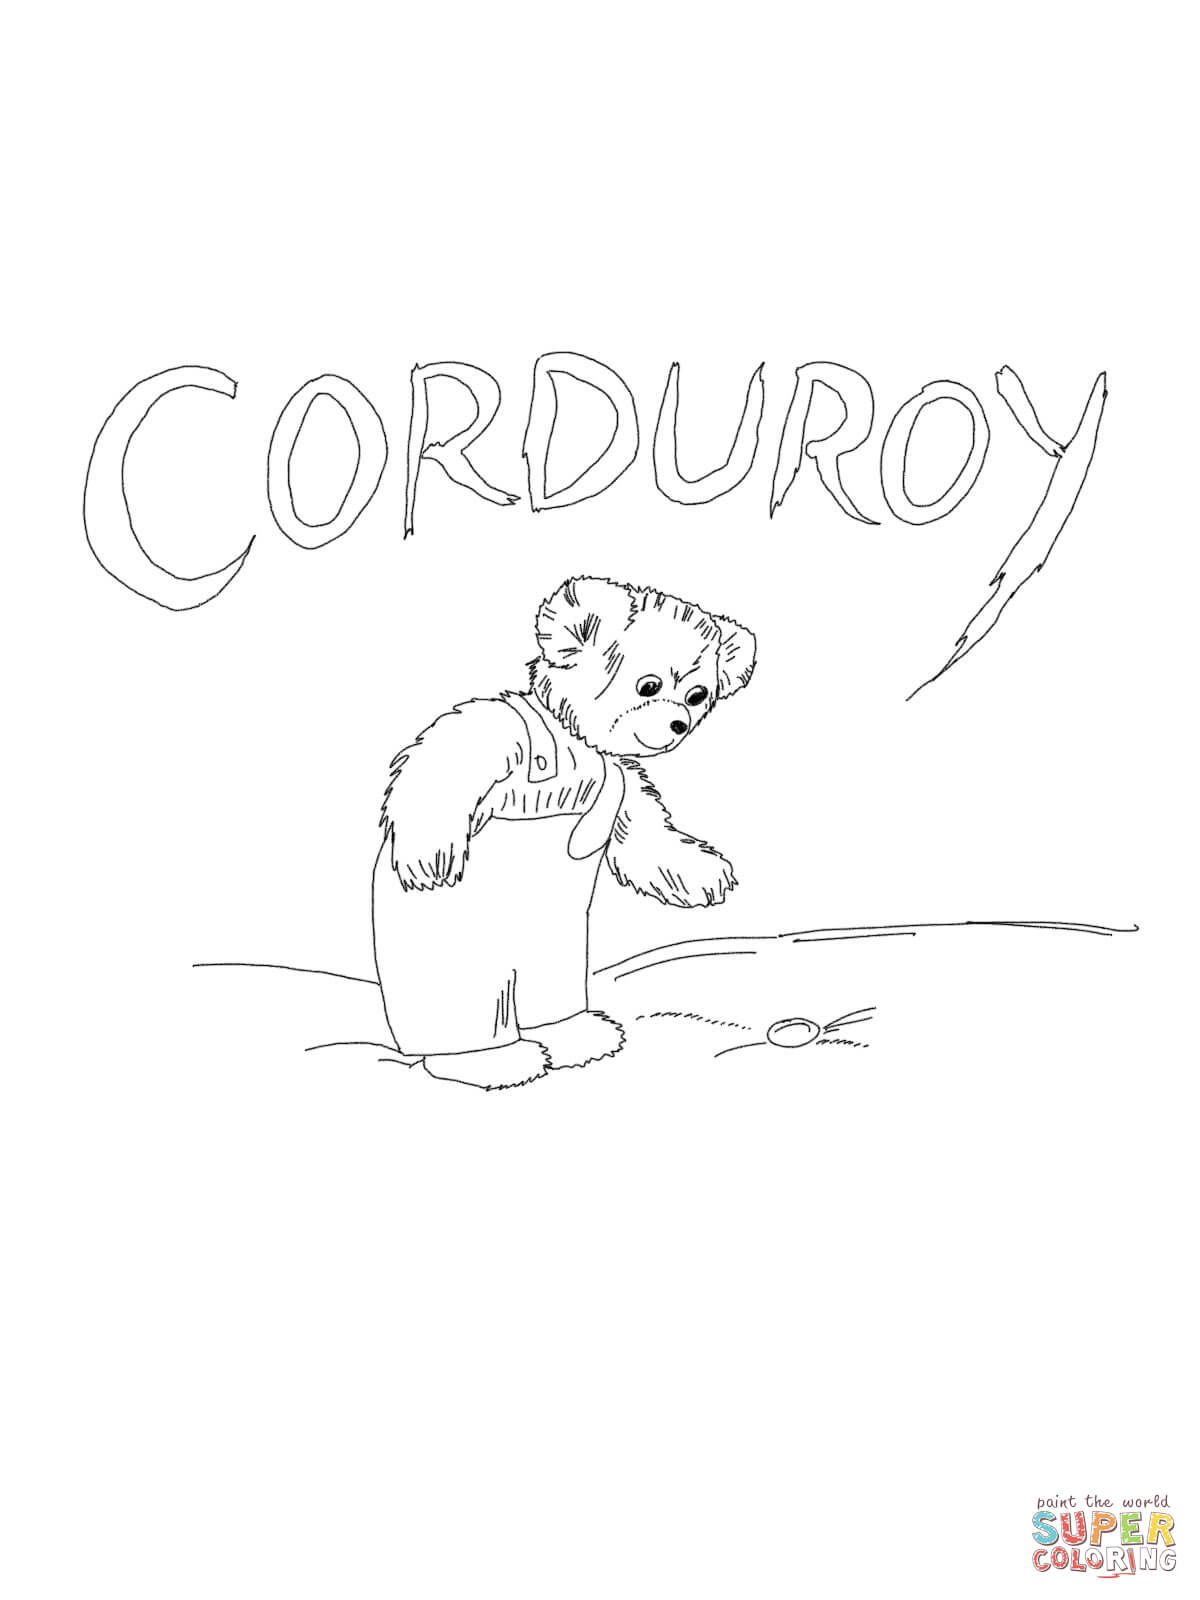 Corduroy Is Looking For Button Coloring Page Free Printable